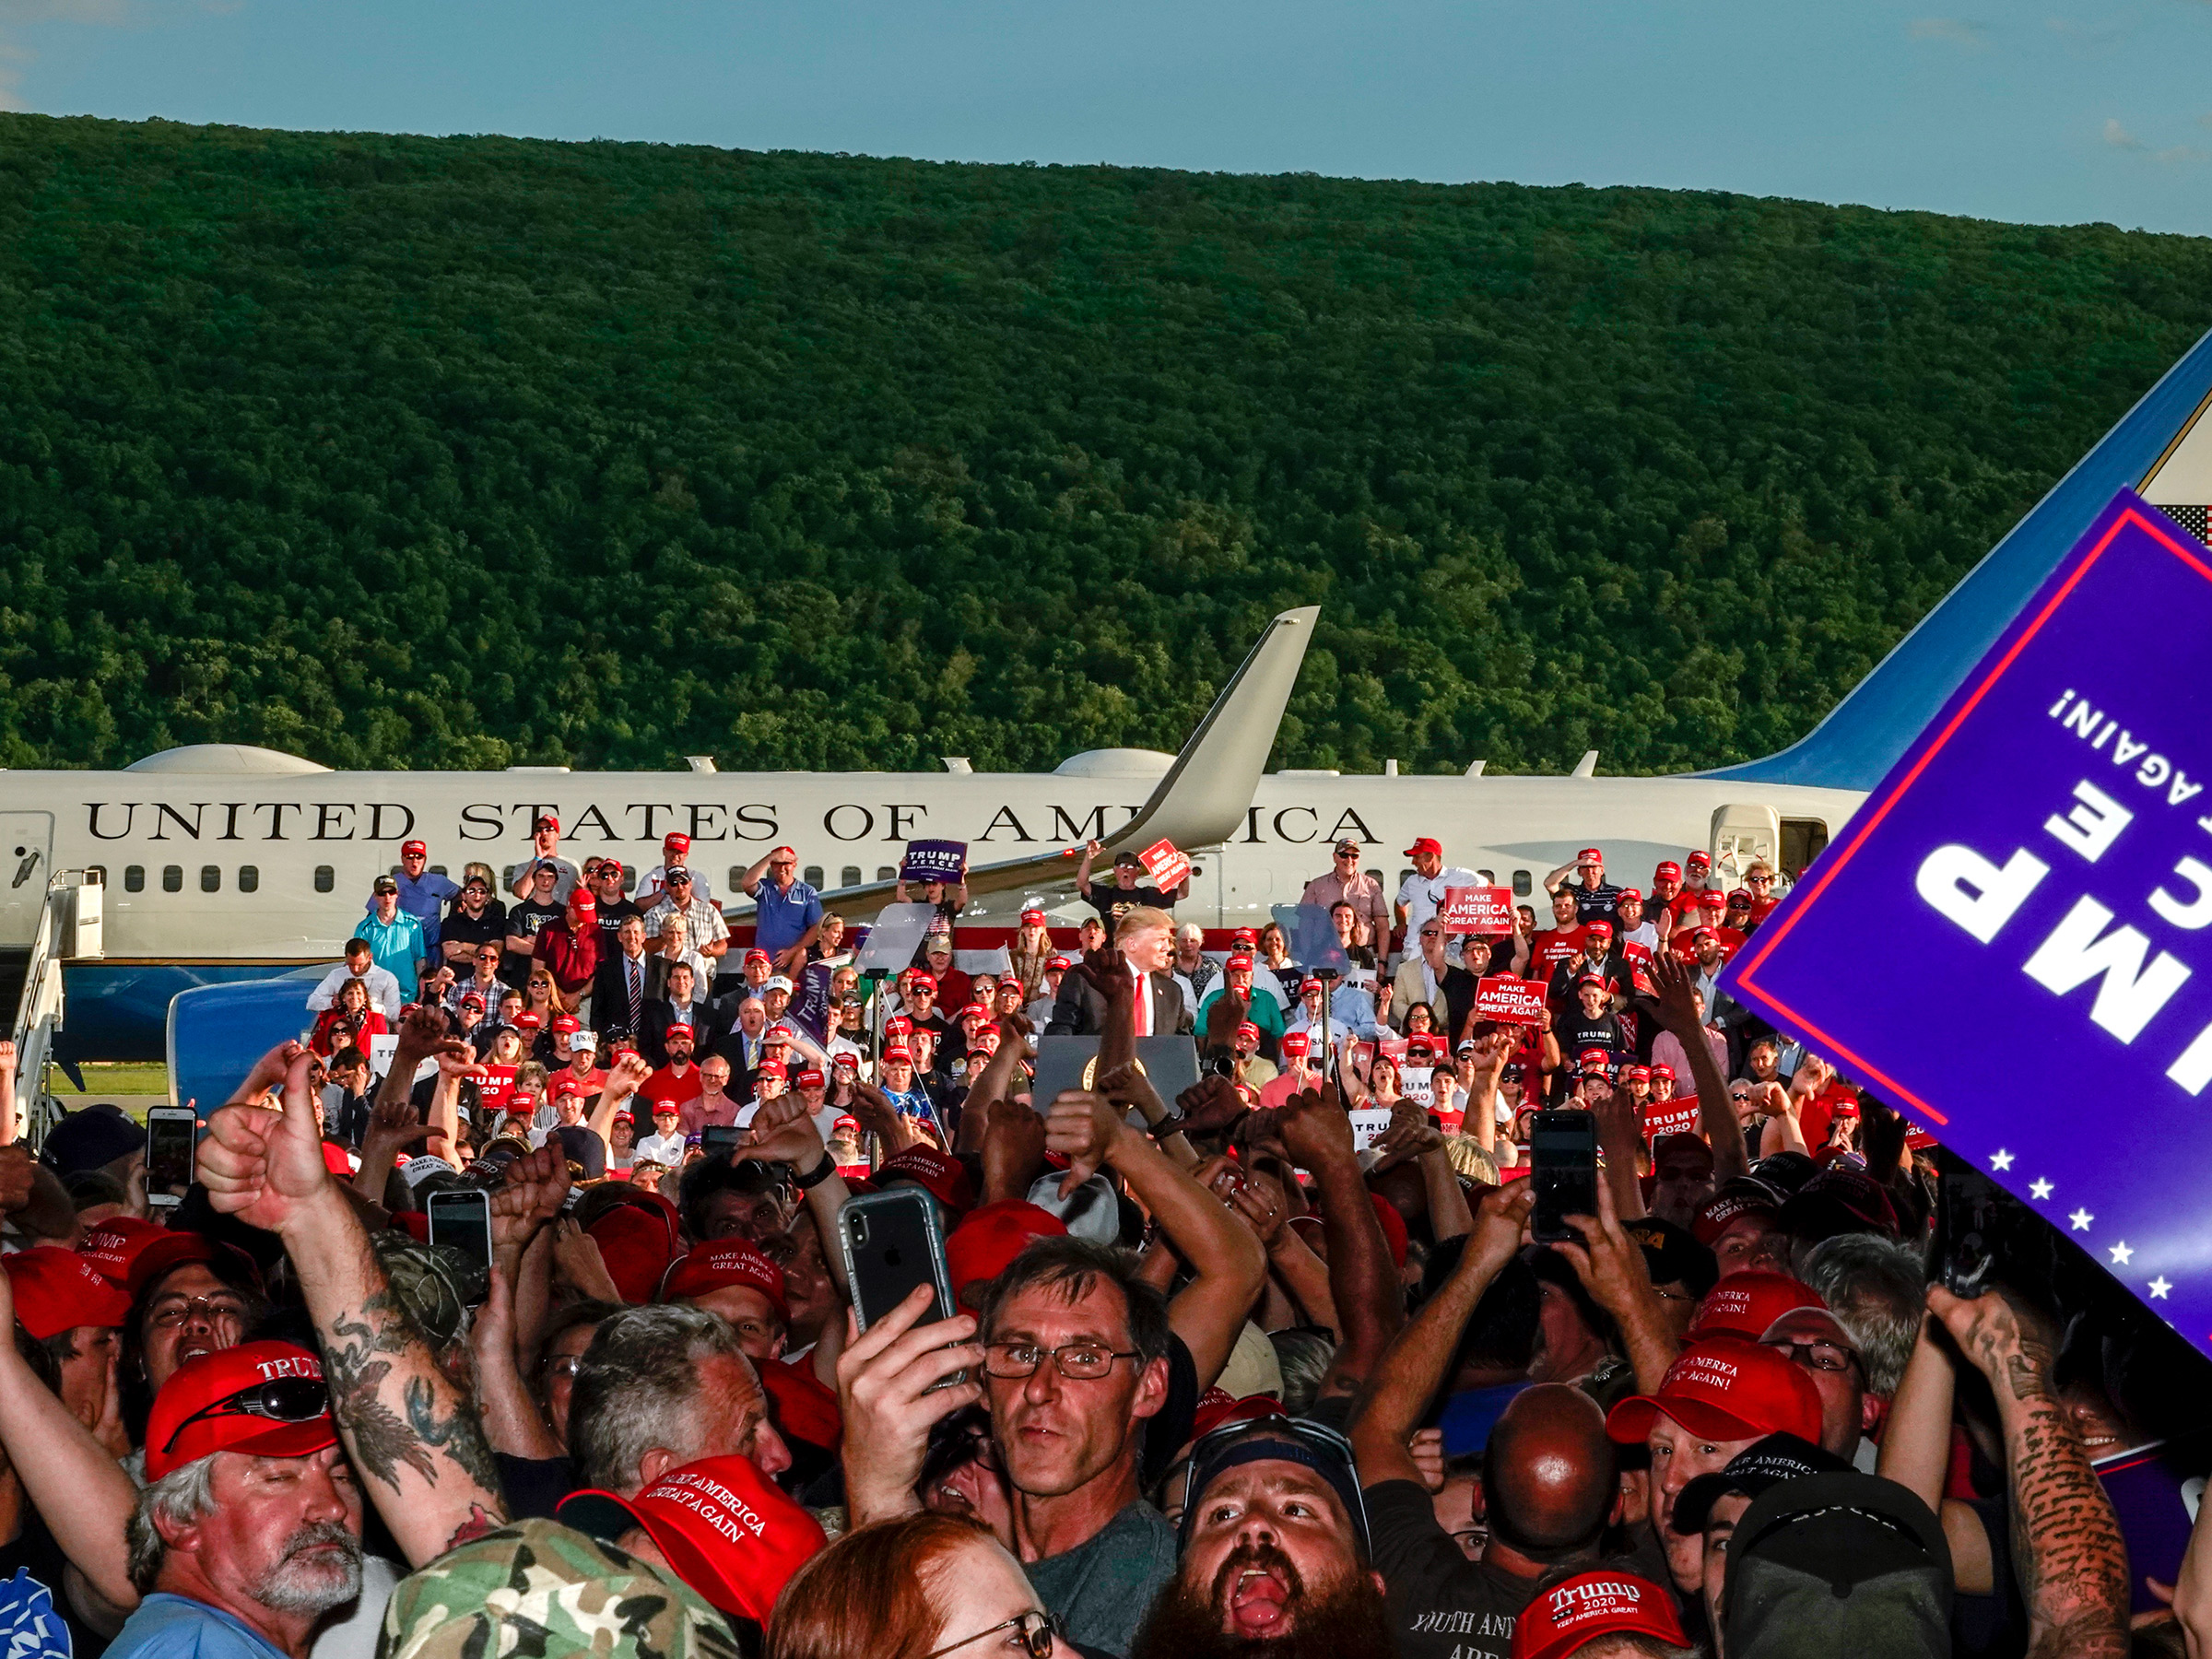 Montoursville, Pa., May 20, 2019. President Trump complains about at the media during a campaign rally, causing the crowd to jeer at the press.